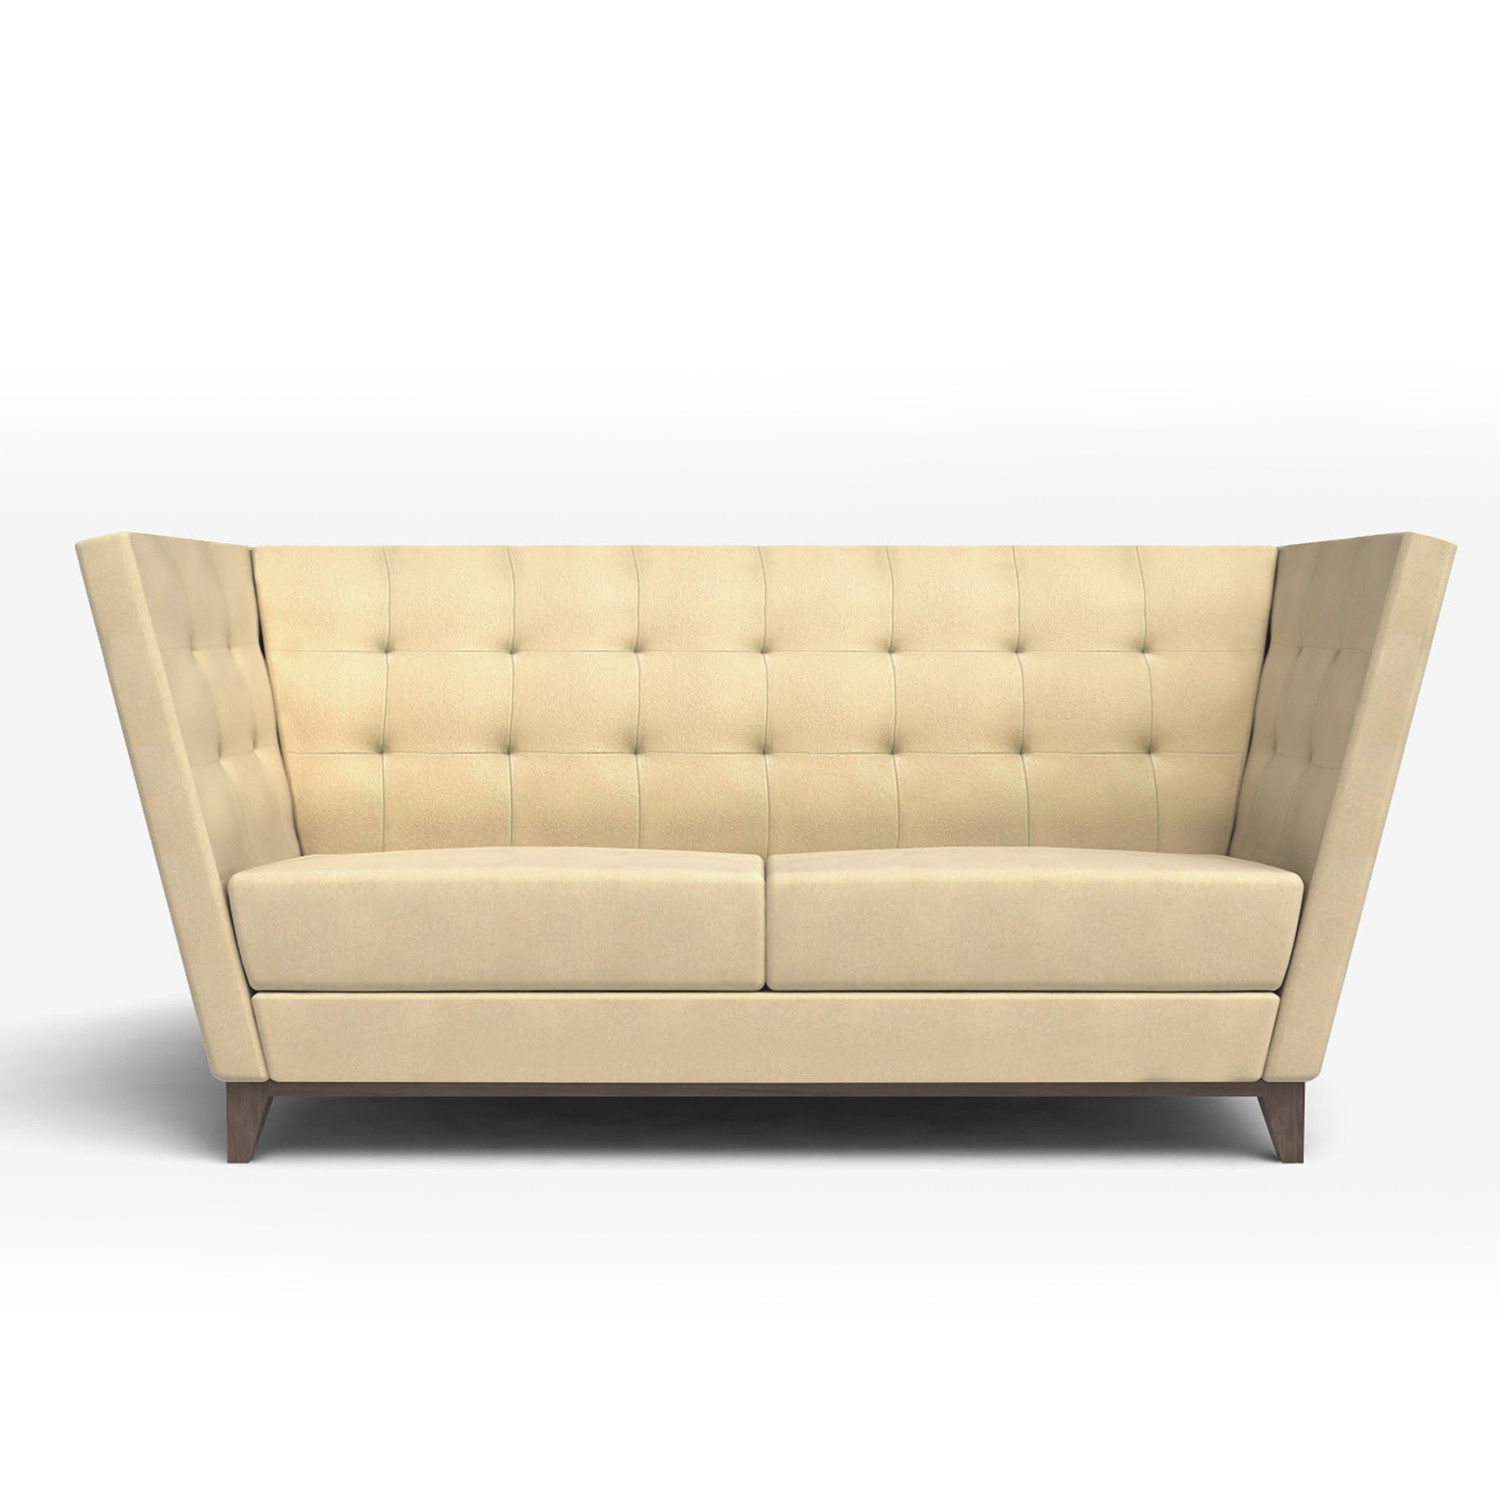 Andes Sound Absorbing Sofa